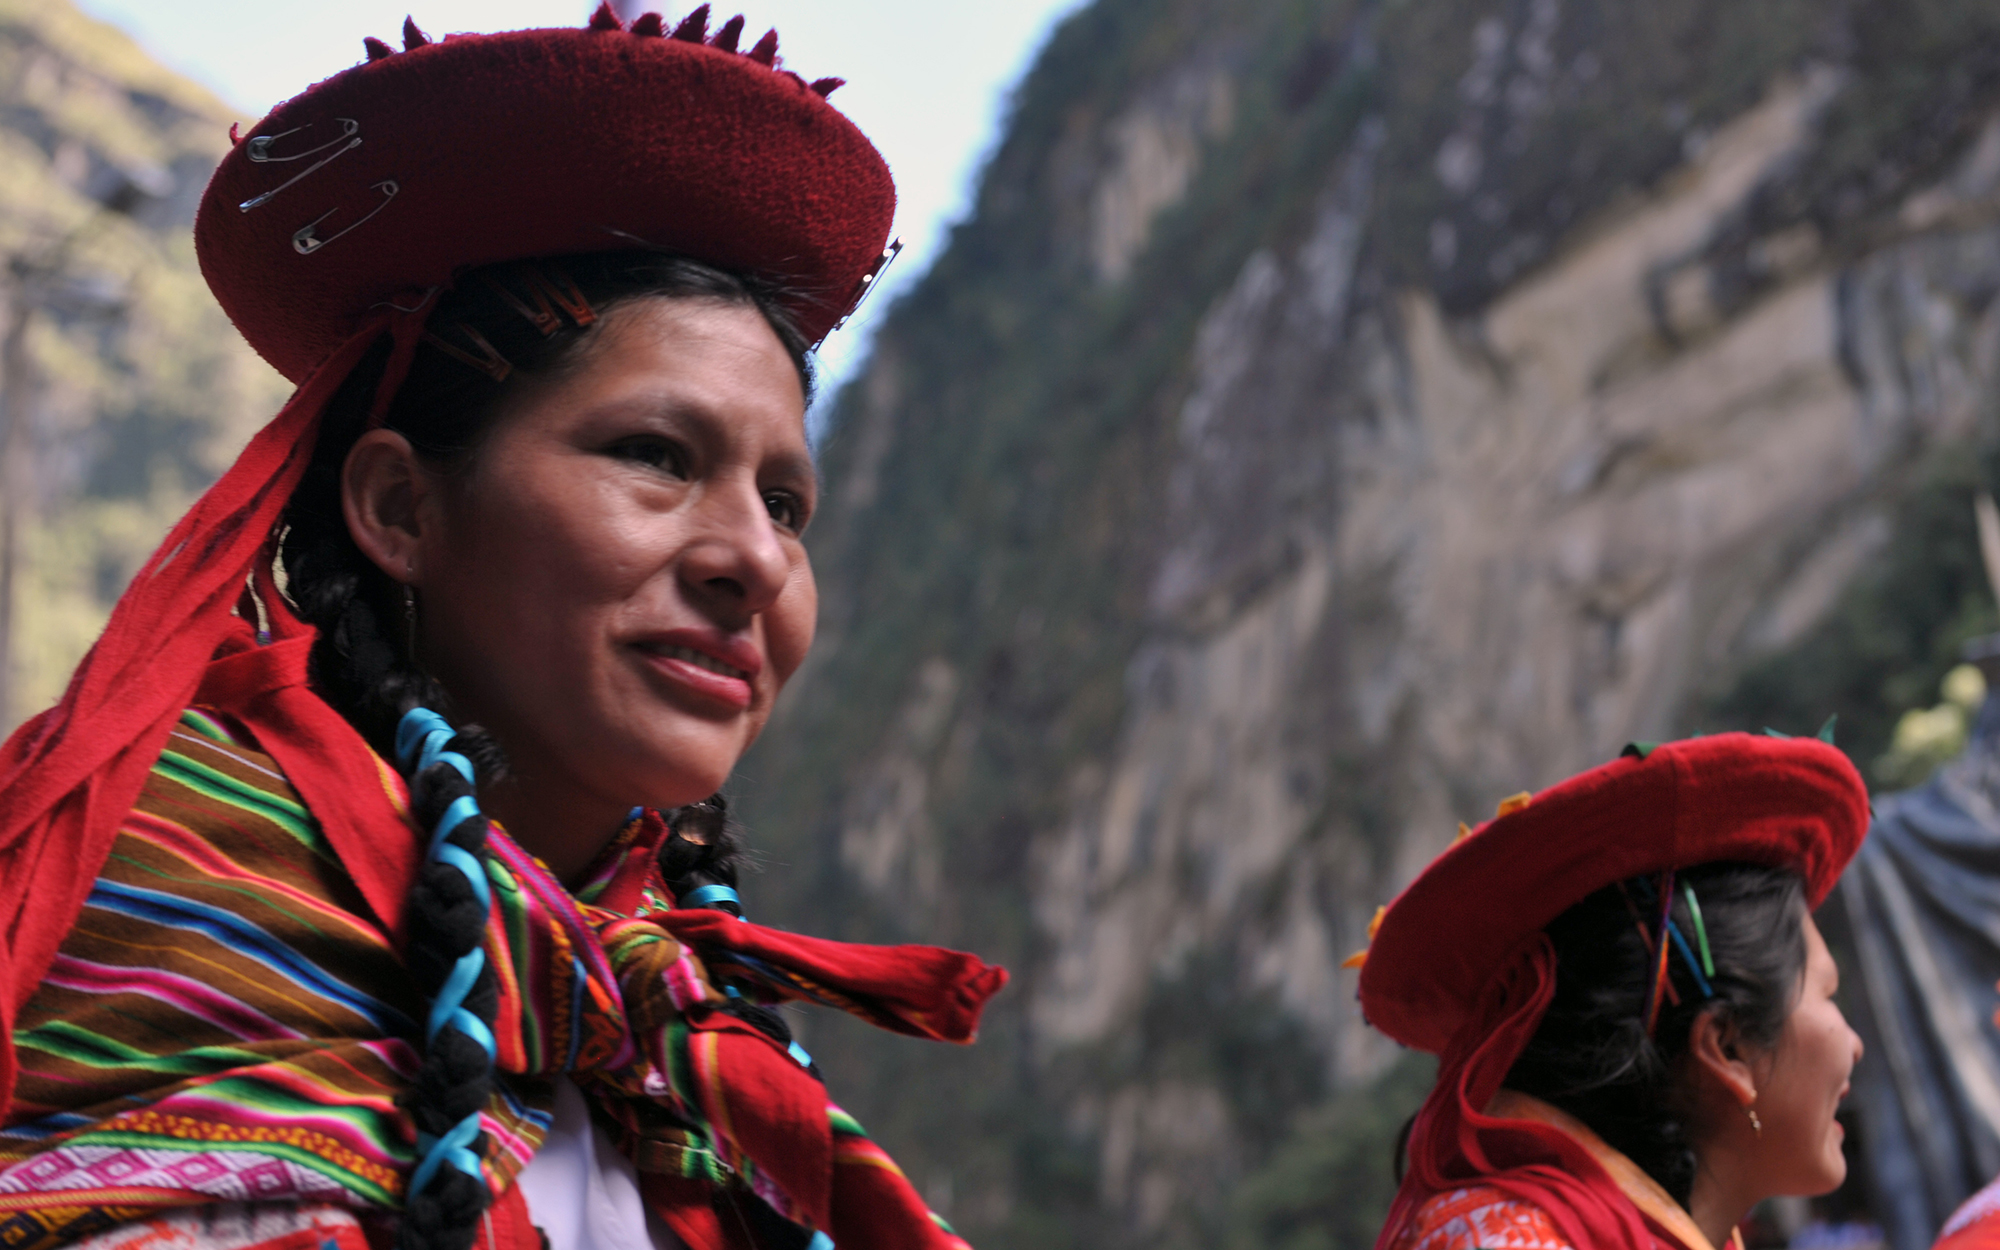 Women in traditional regional Andean attire participate in a civic parade on July 6, 2011 in the town of Machu Picchu at the mountain base under the Inca citadel as part of the festivities commemorating the centennial of its discovery by American adventur